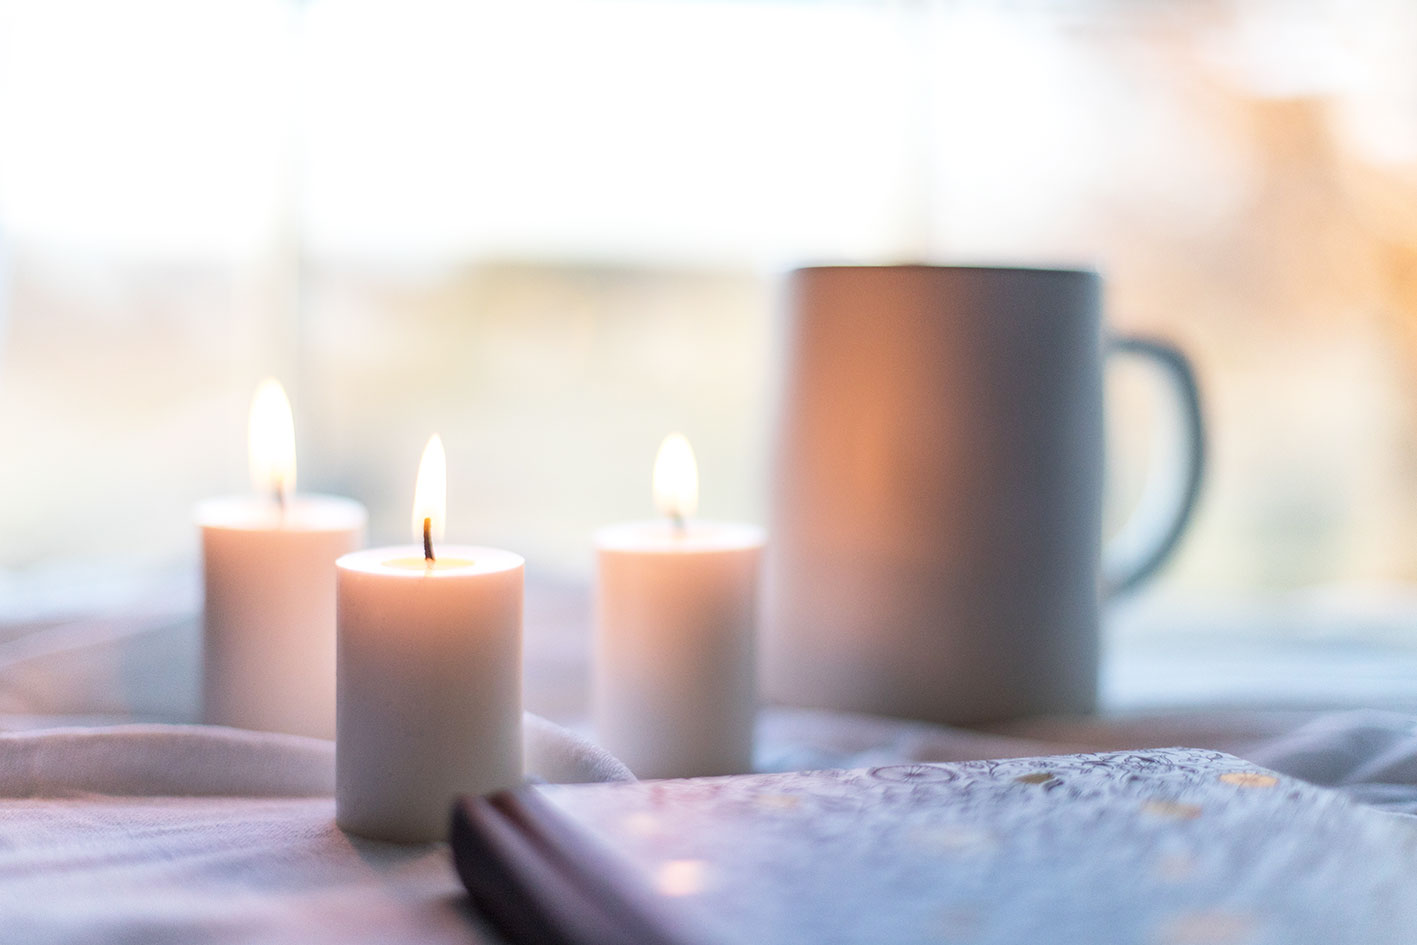 candles , coffee and your notebook, branding goals and intentions for the new year